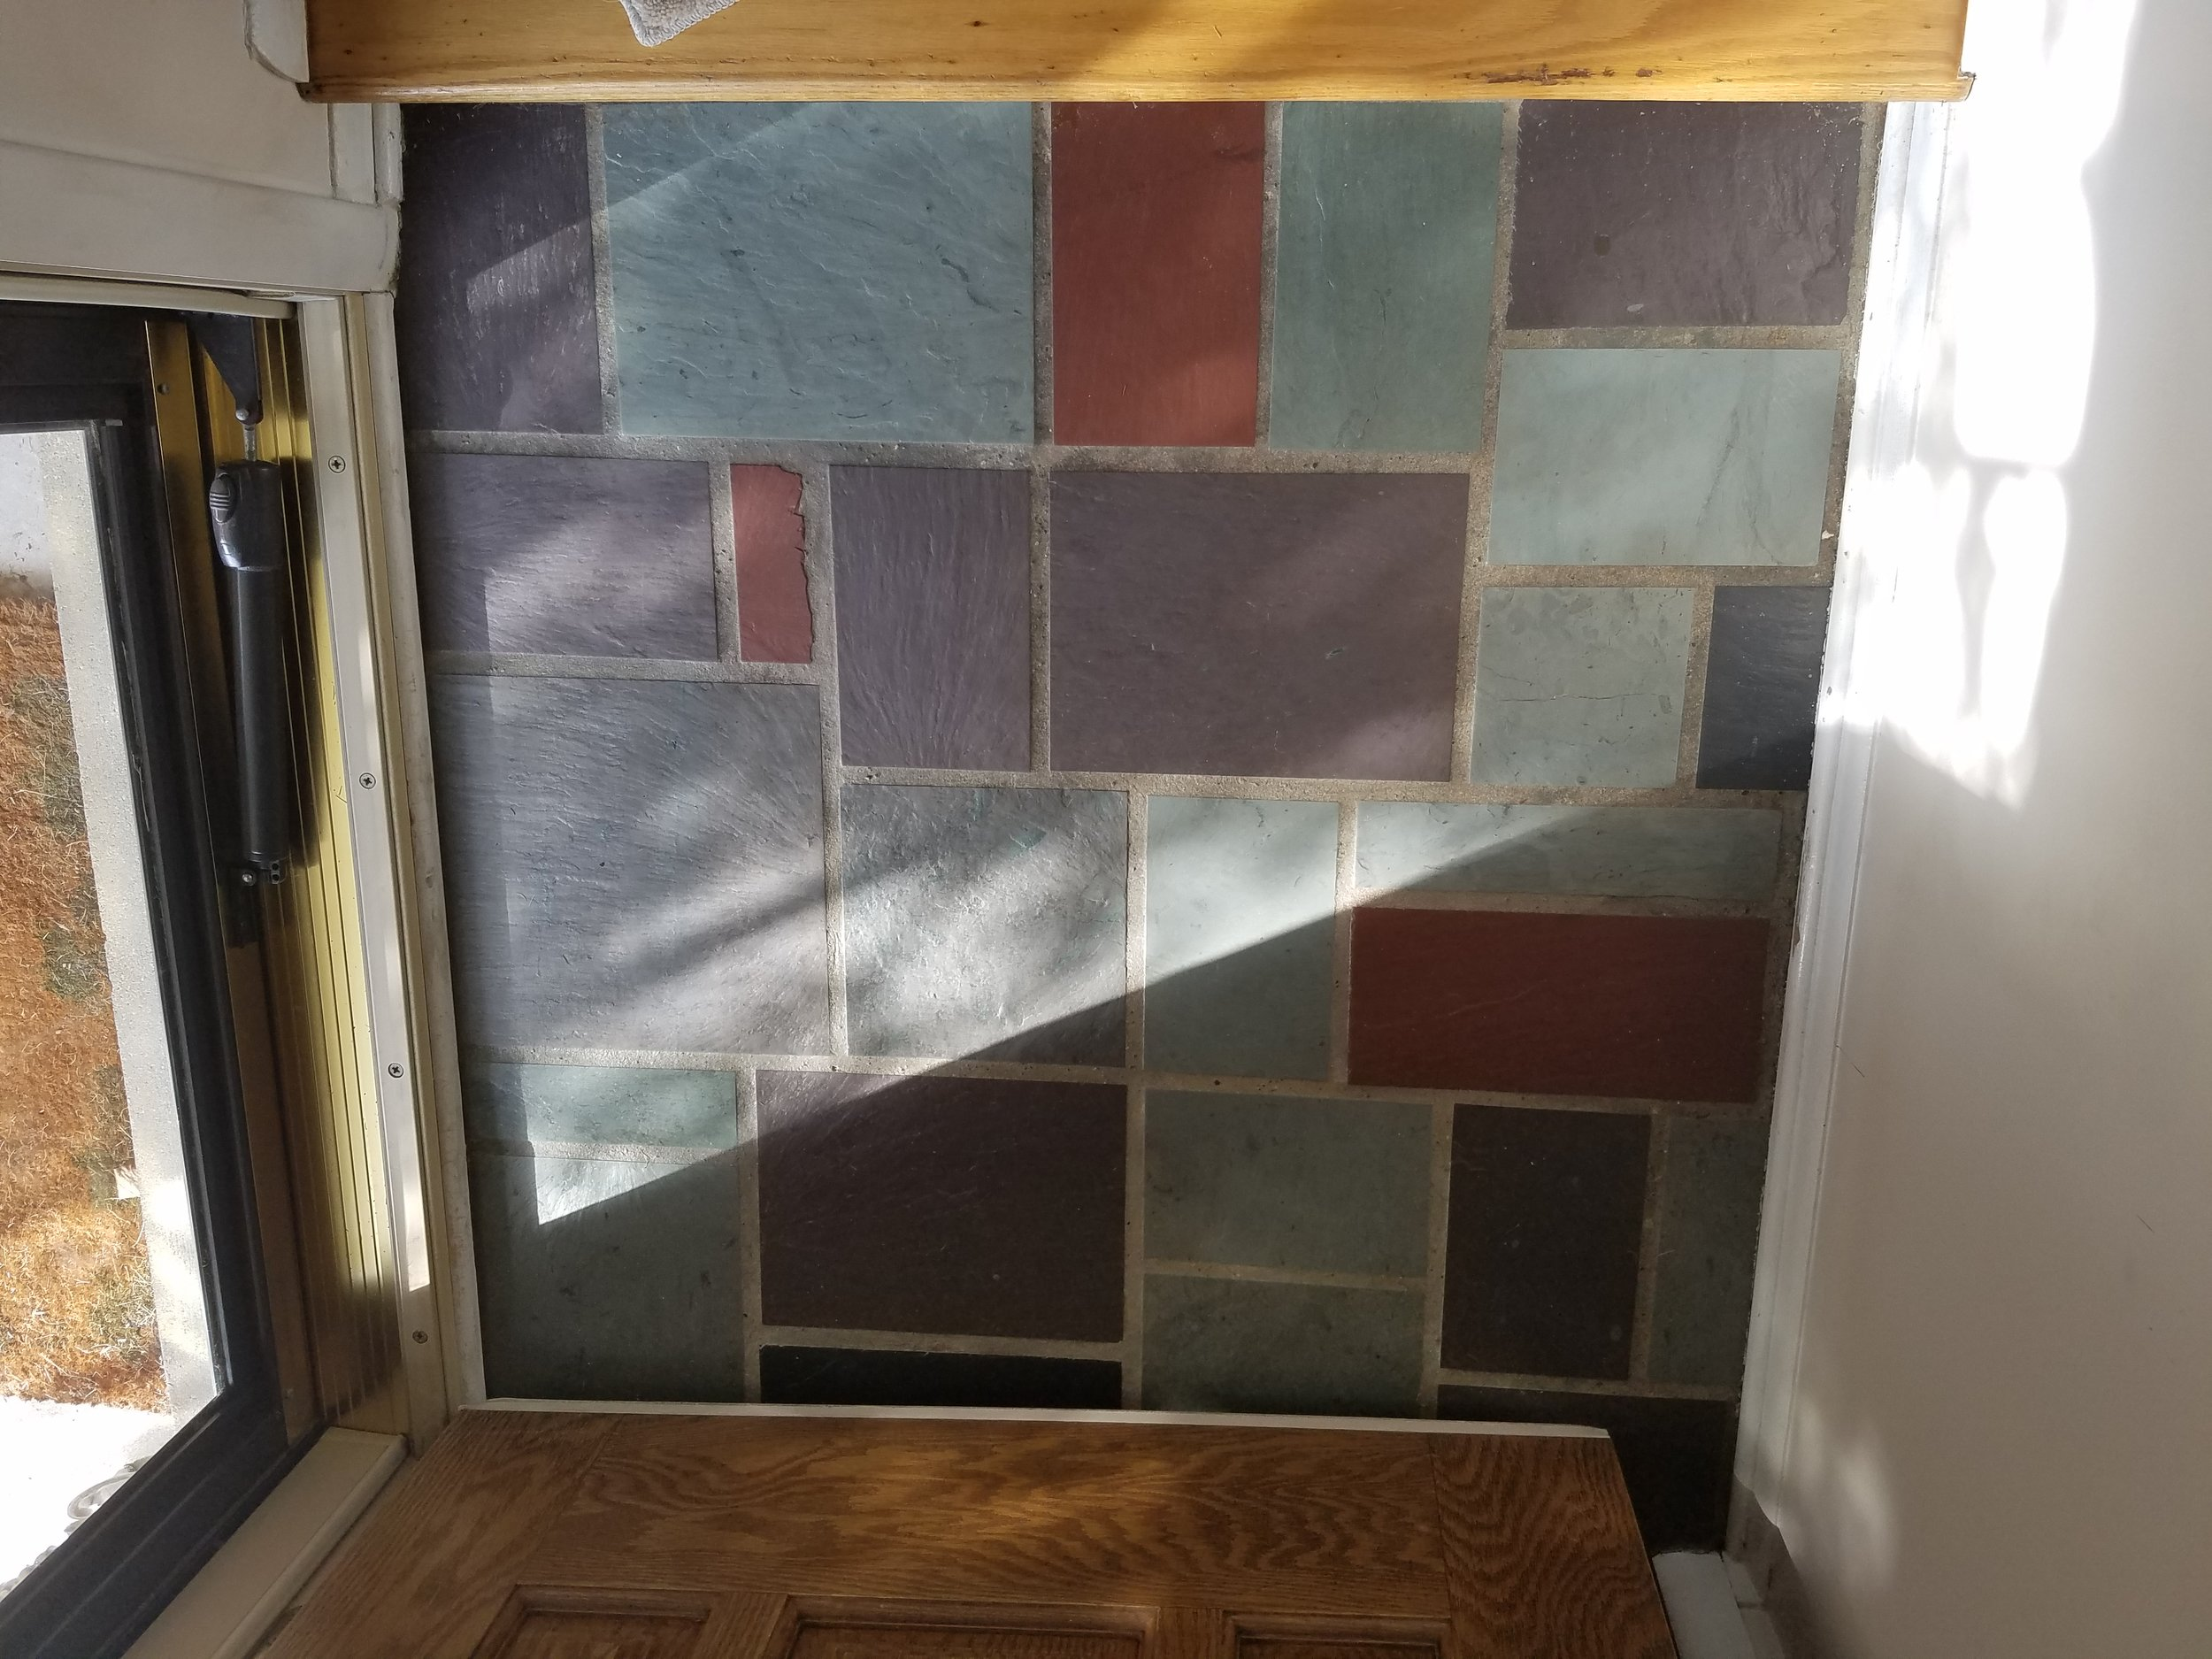 Years of wear have made the grout become faded and stained.